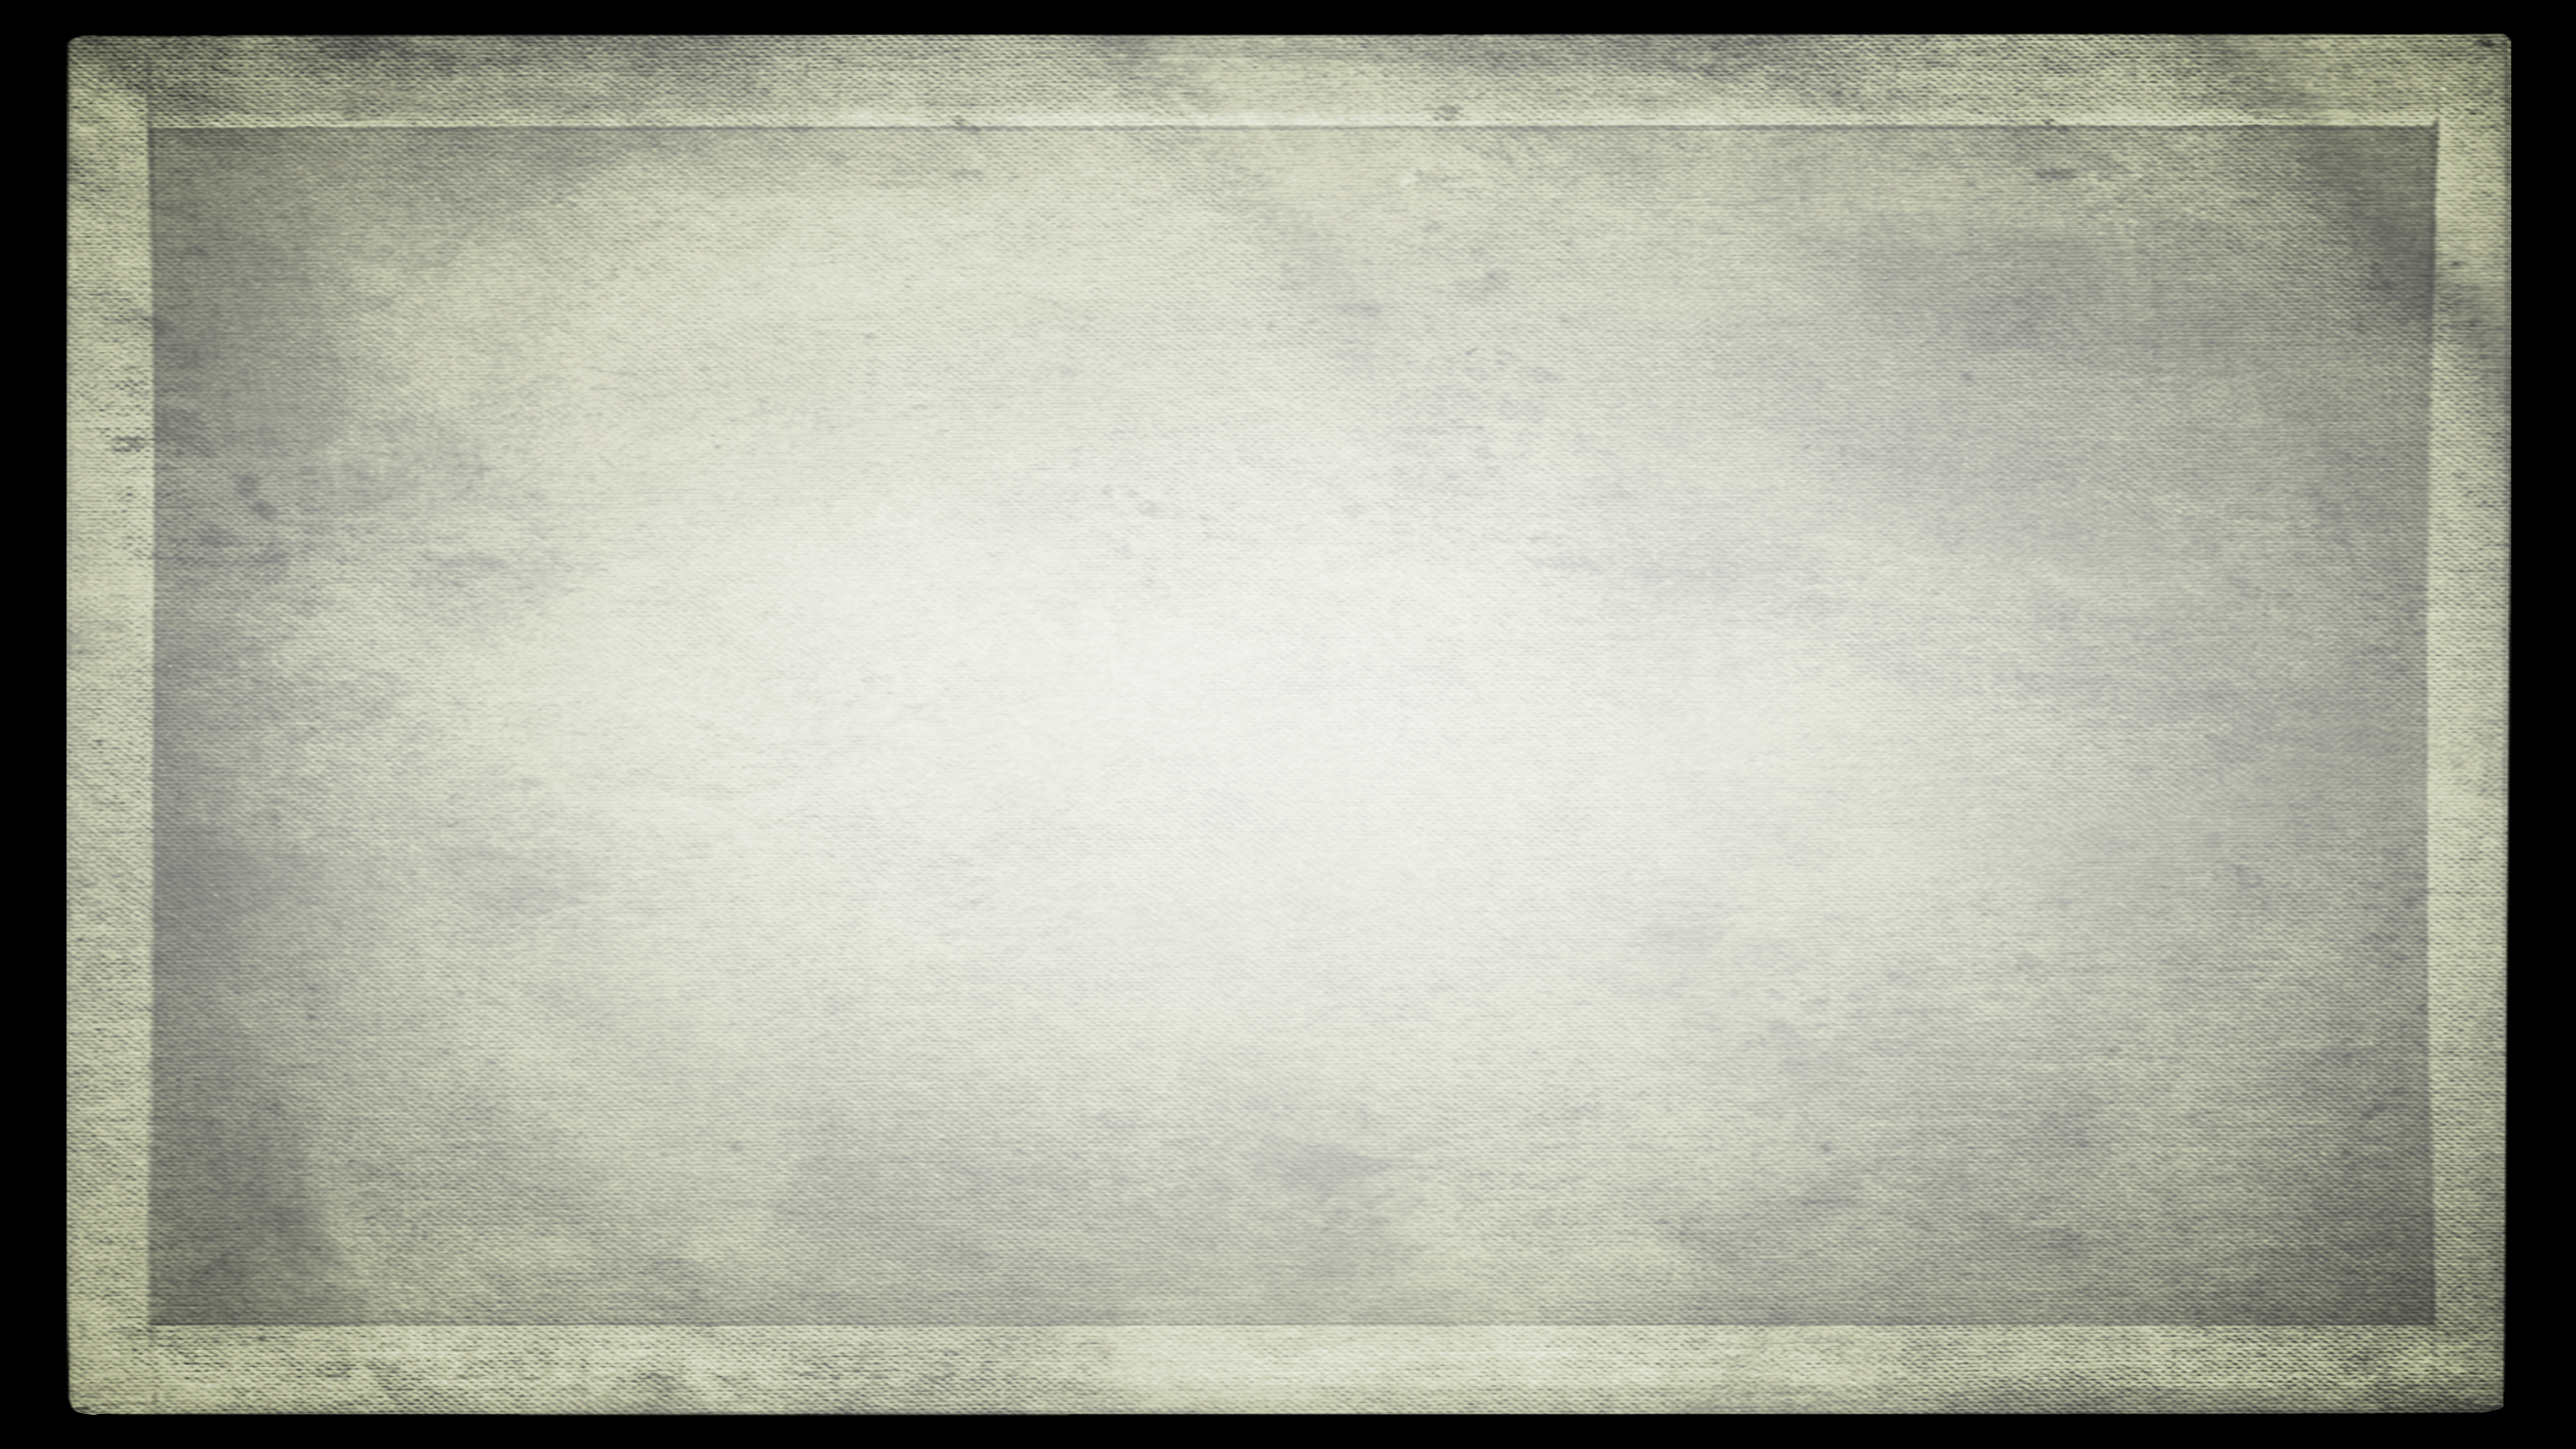 Light Color Dirty Grunge Texture Background